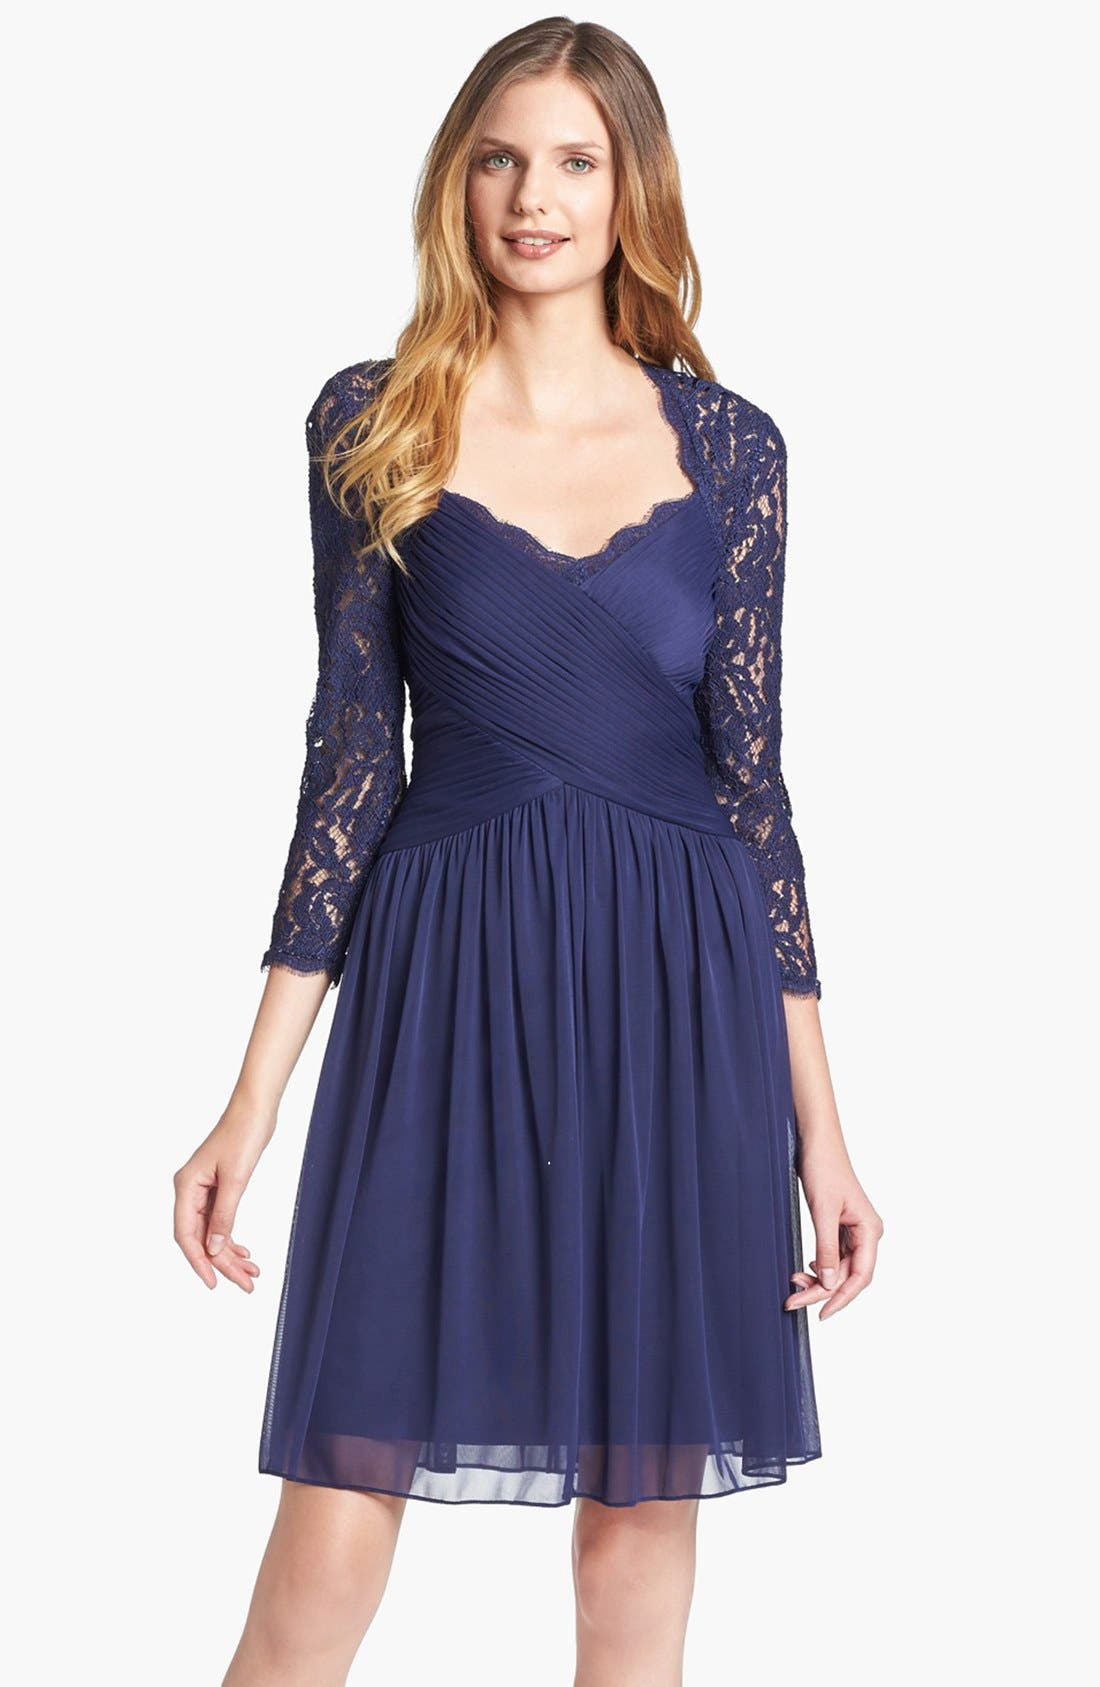 Alternate Image 1 Selected - Adrianna Papell Lace Sleeve Mesh Fit & Flare Dress